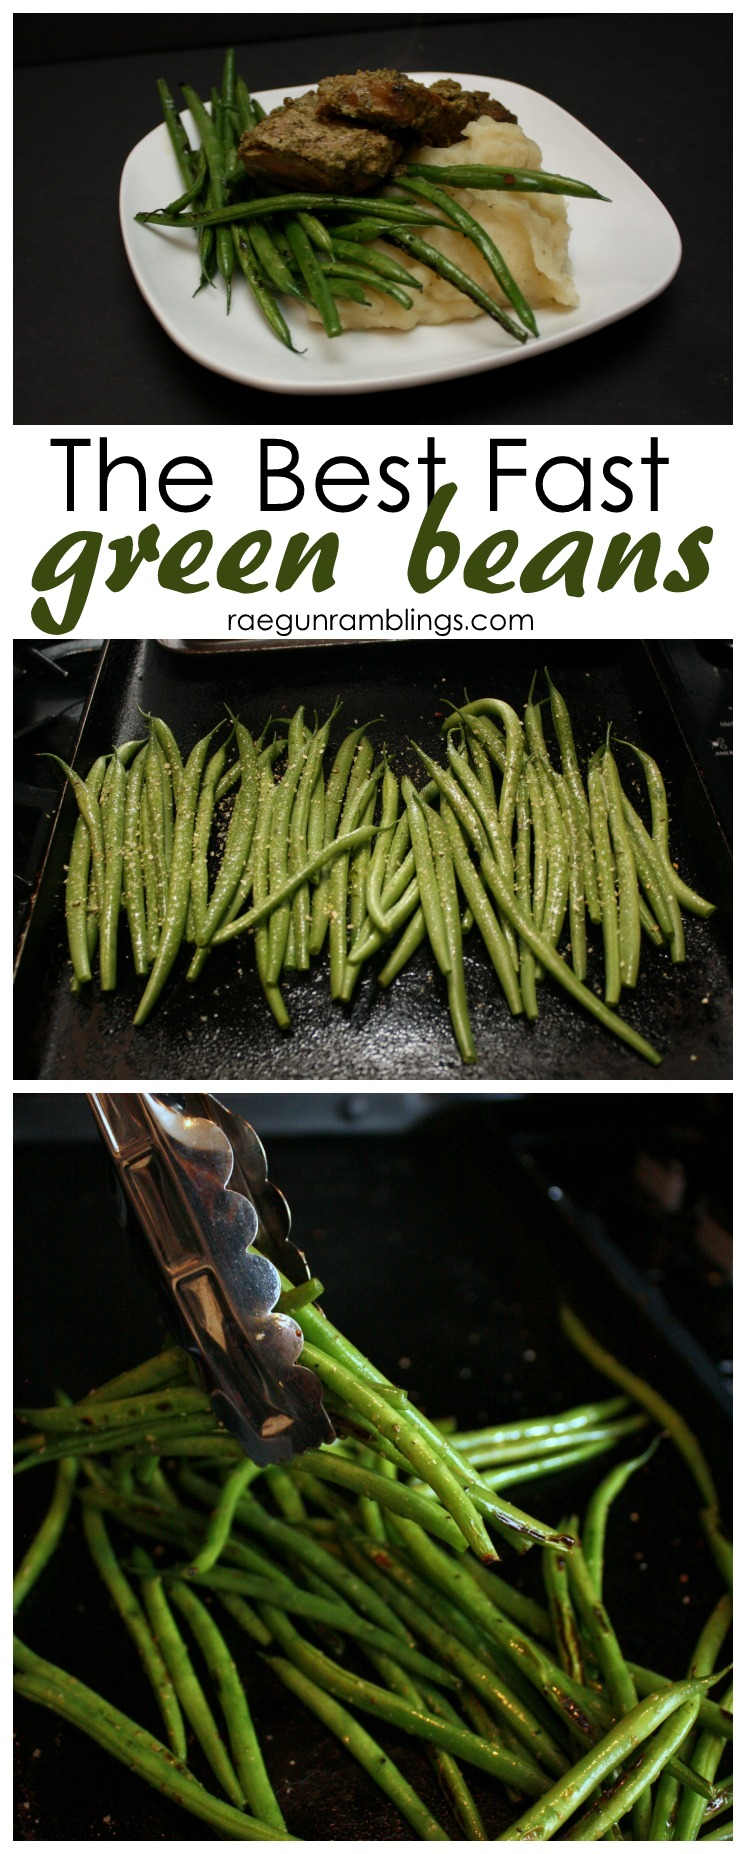 These are so good. Best vegetable side ever. Fast green bean recipe